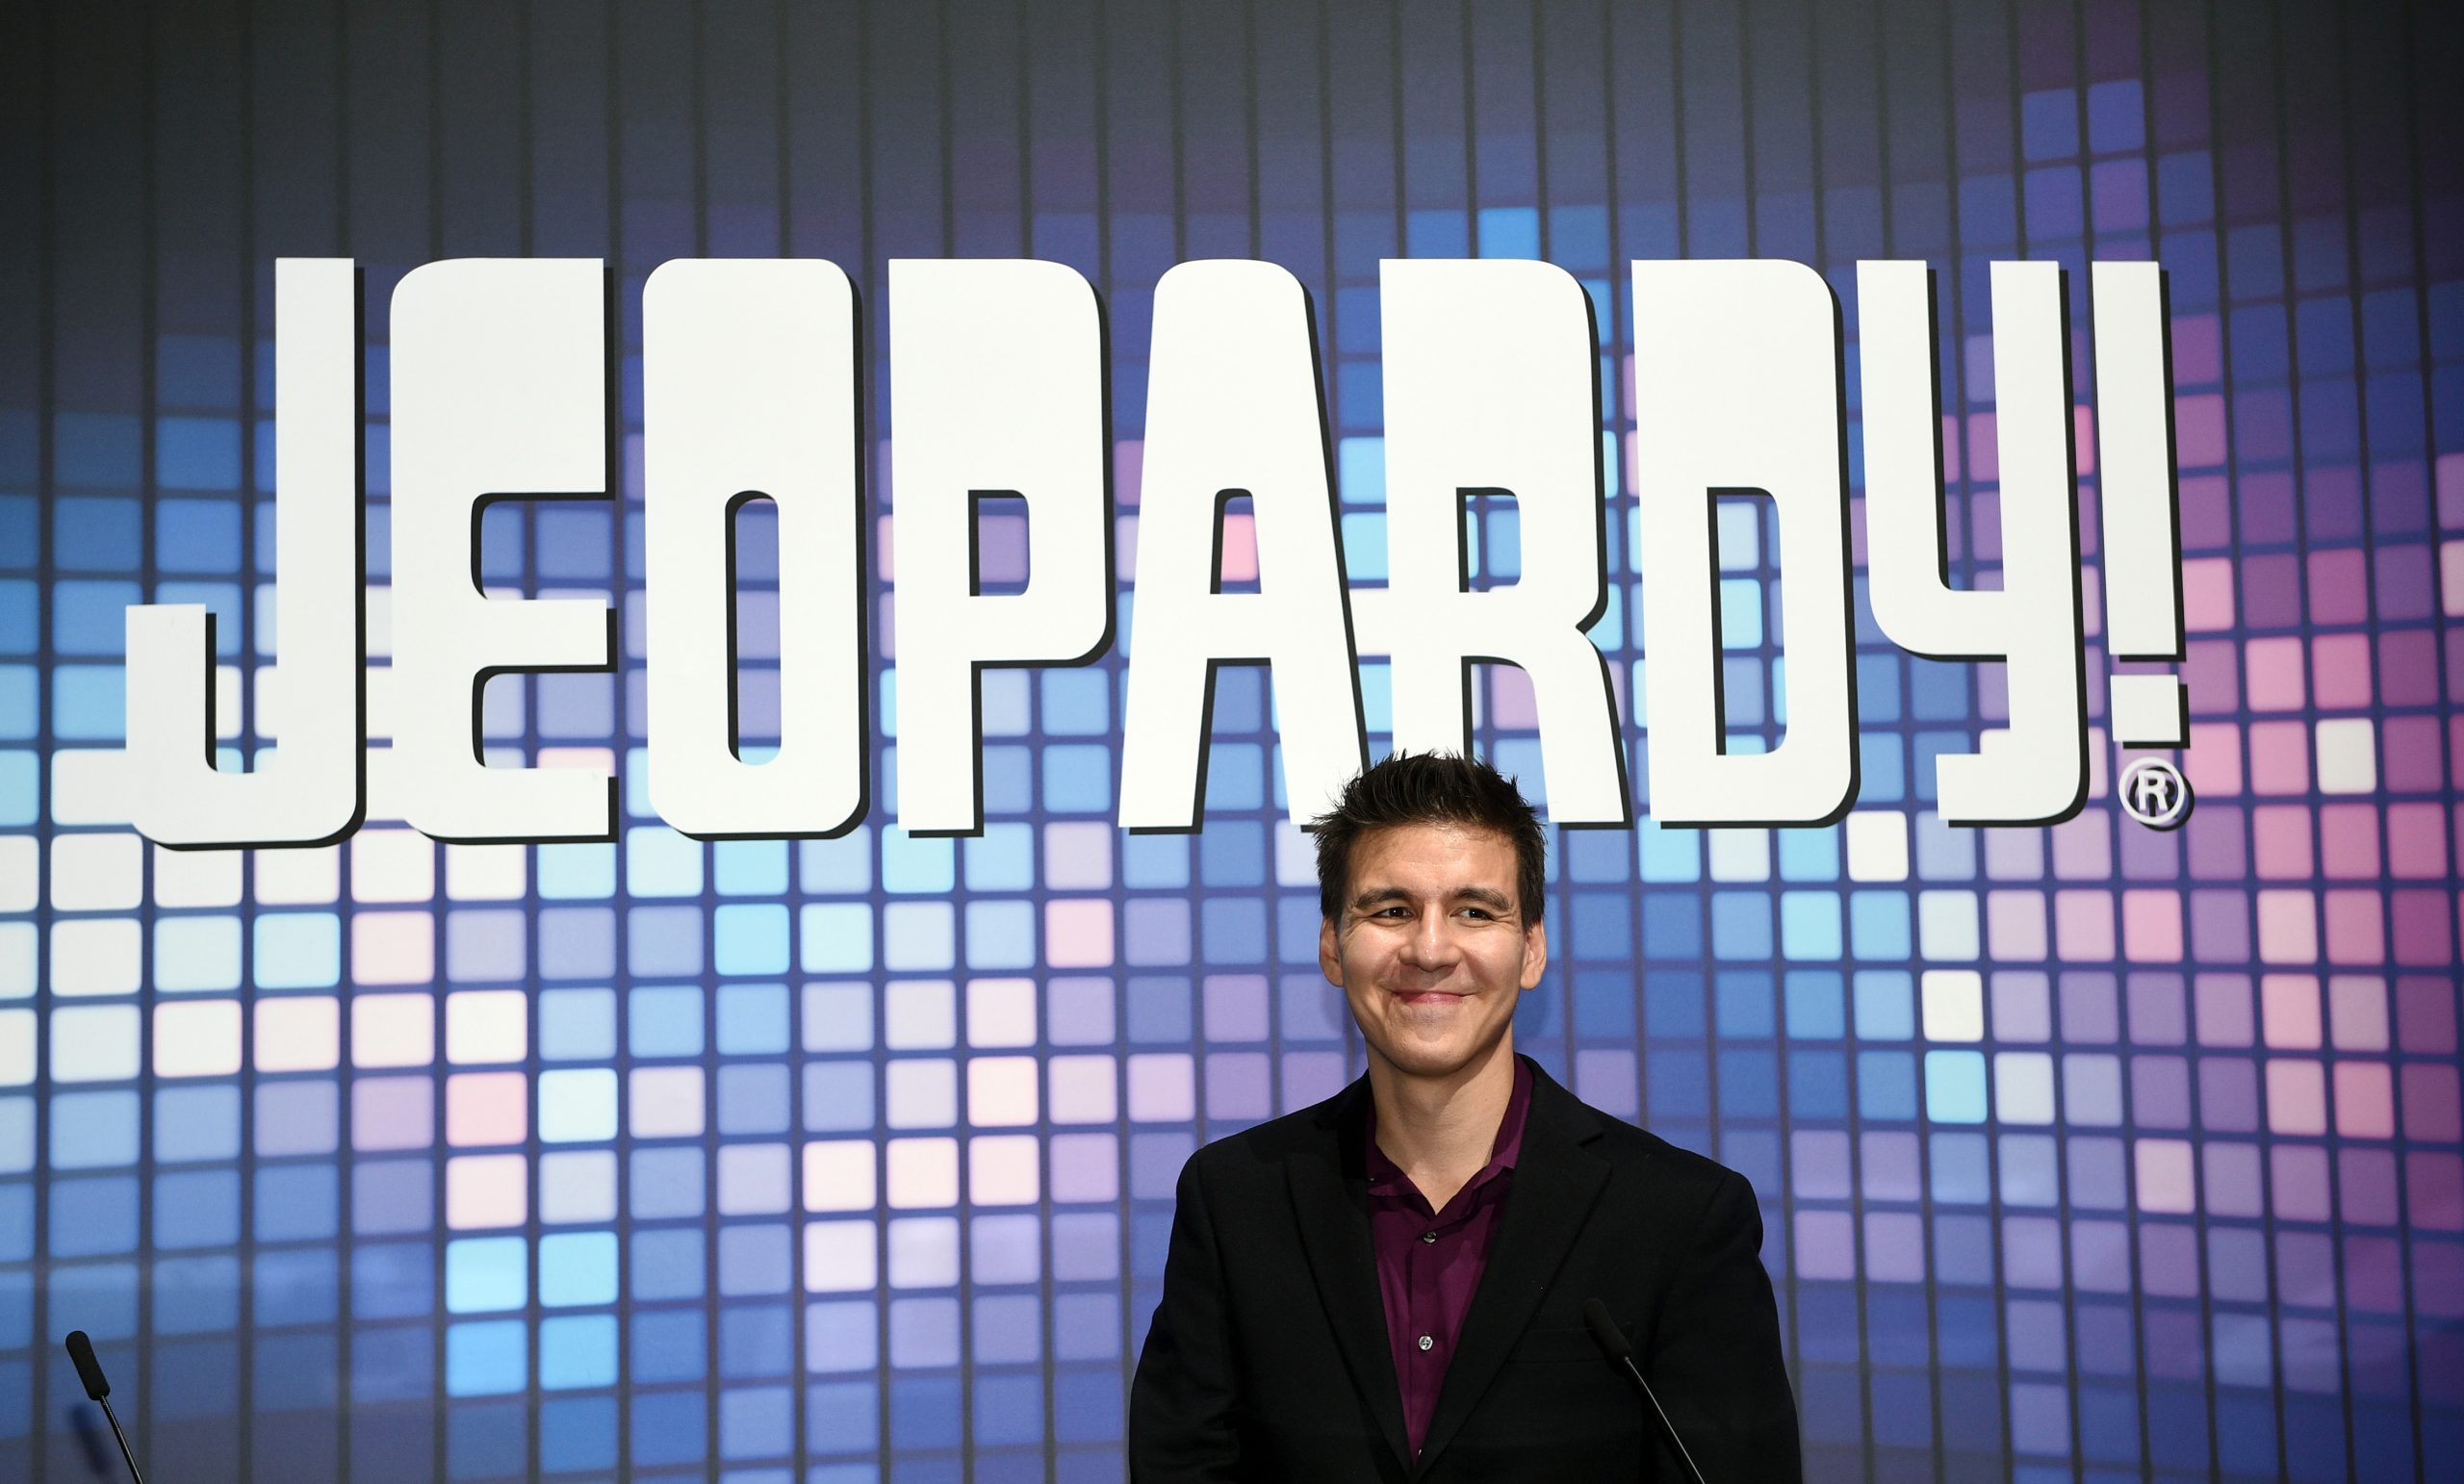 'Jeopardy!'s James Holzhauer has something to say about the quiz show's search for a new host.